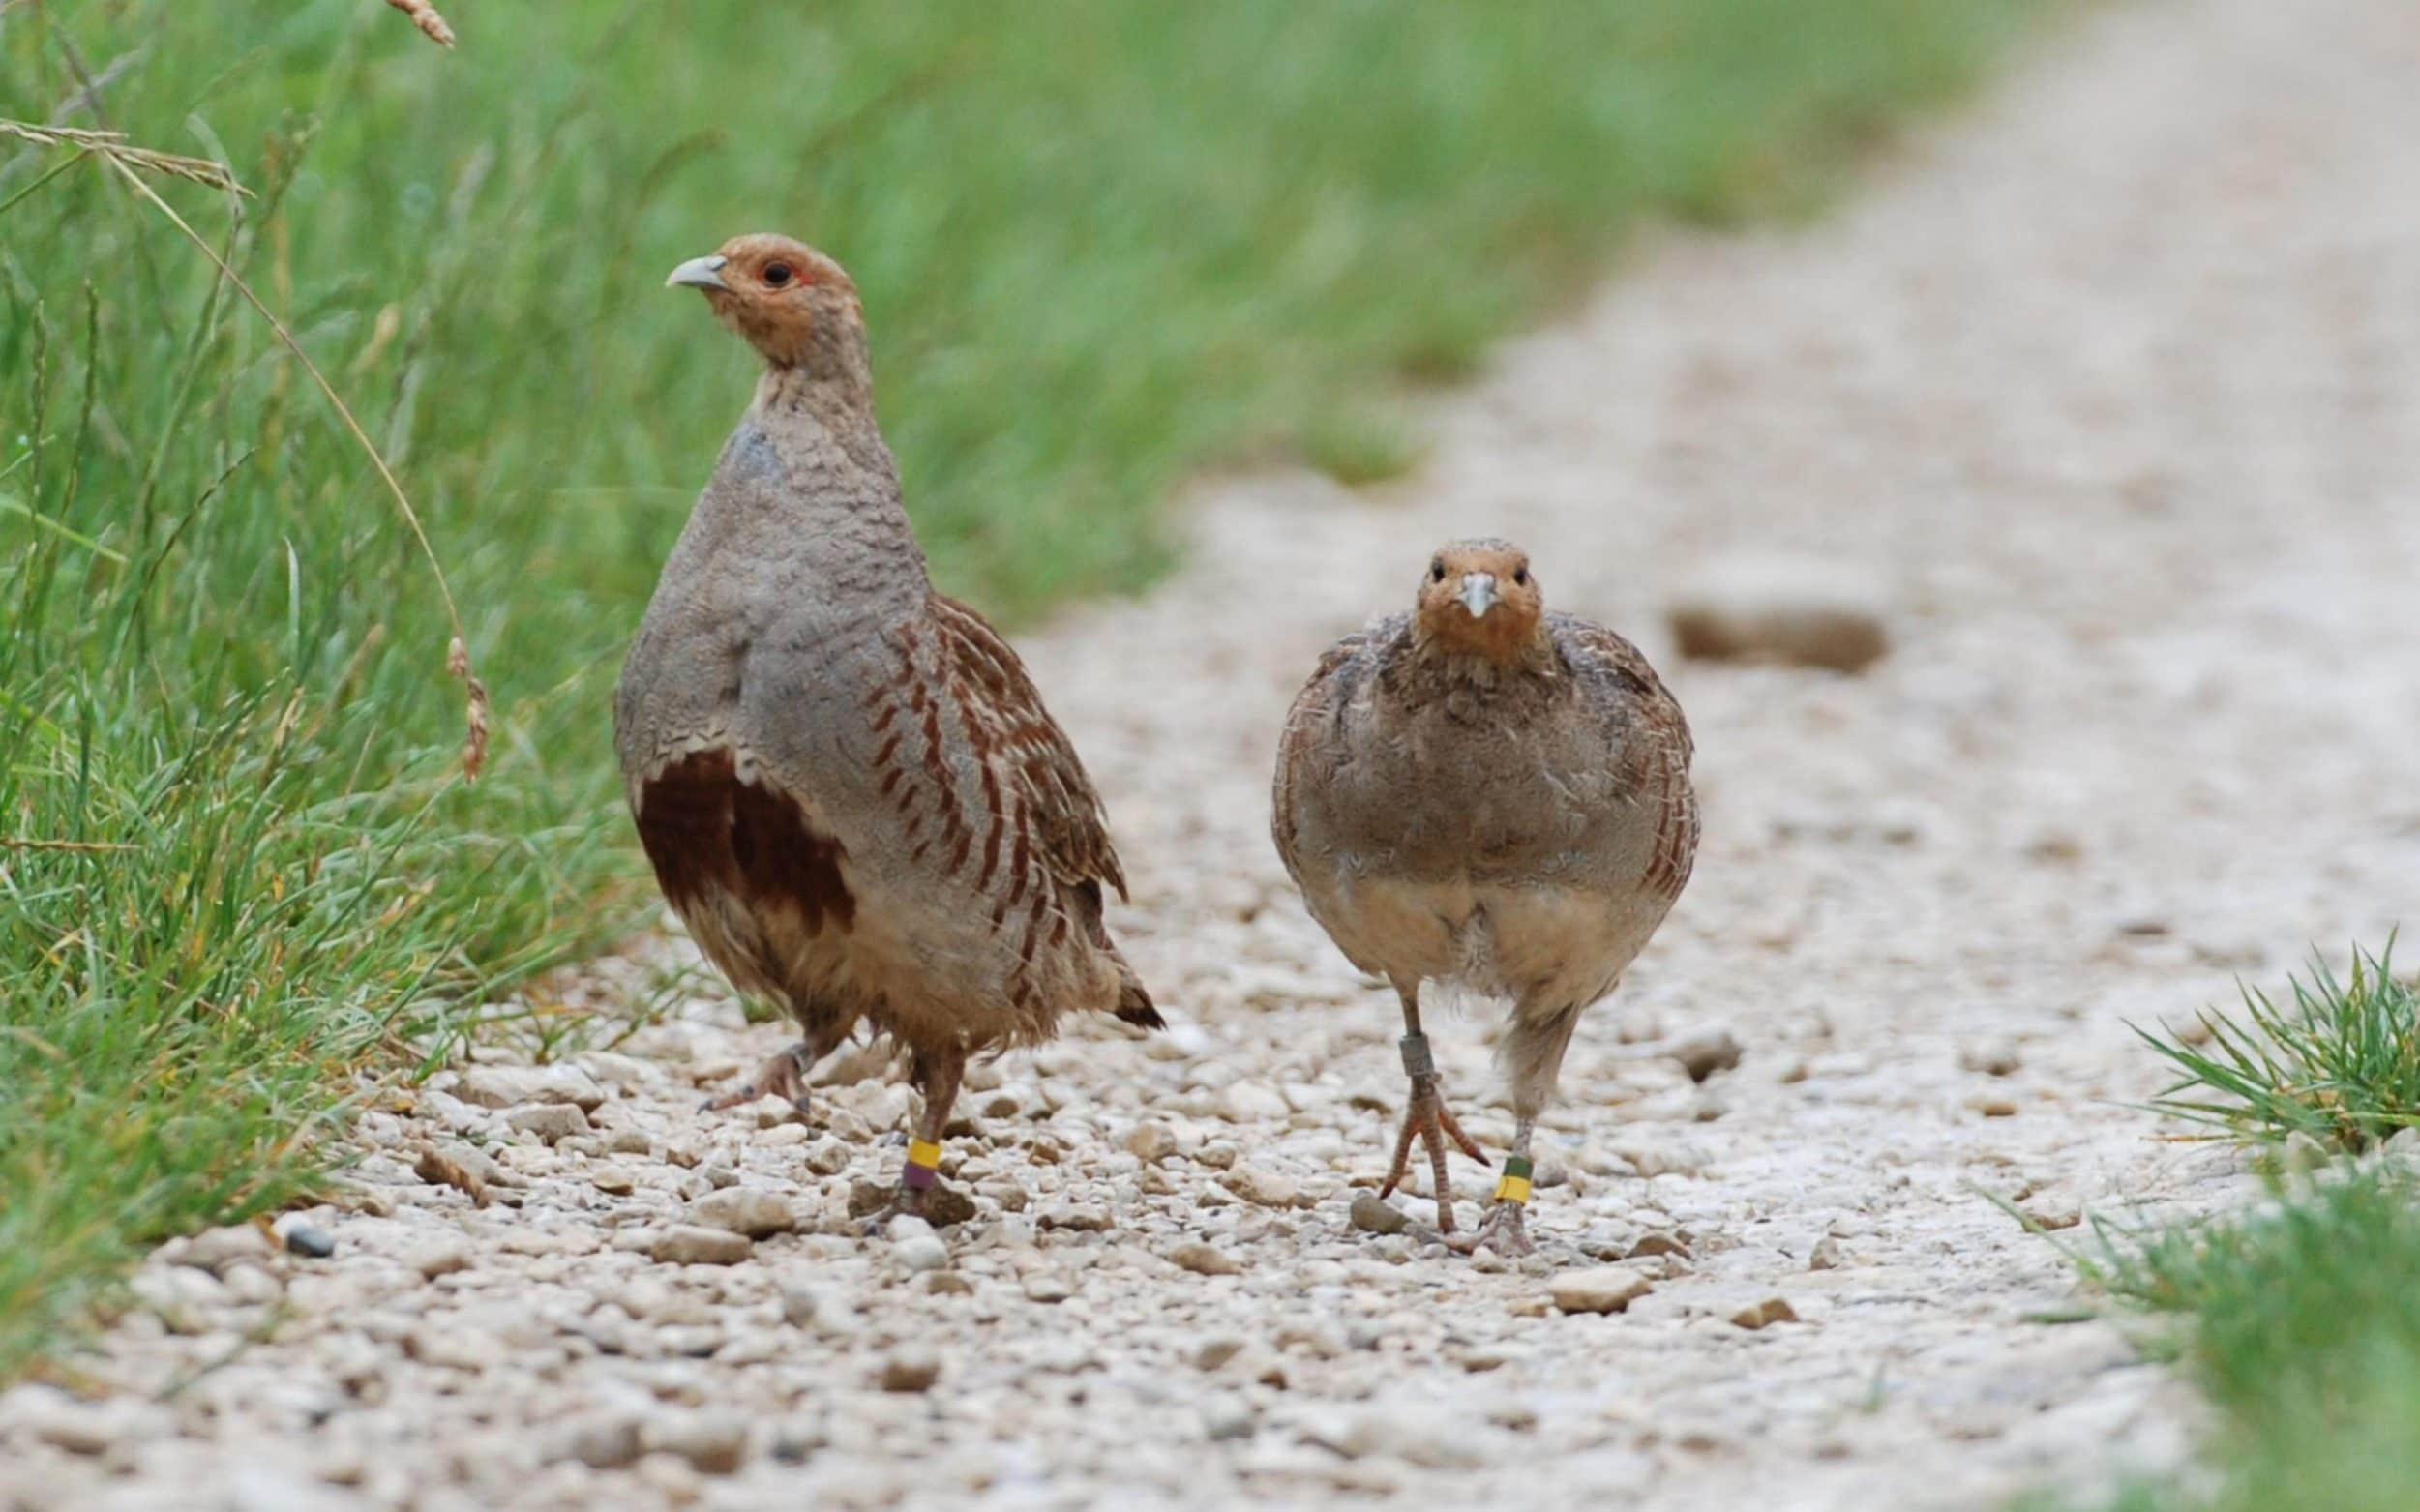 Numbers of grey partridge have also declined